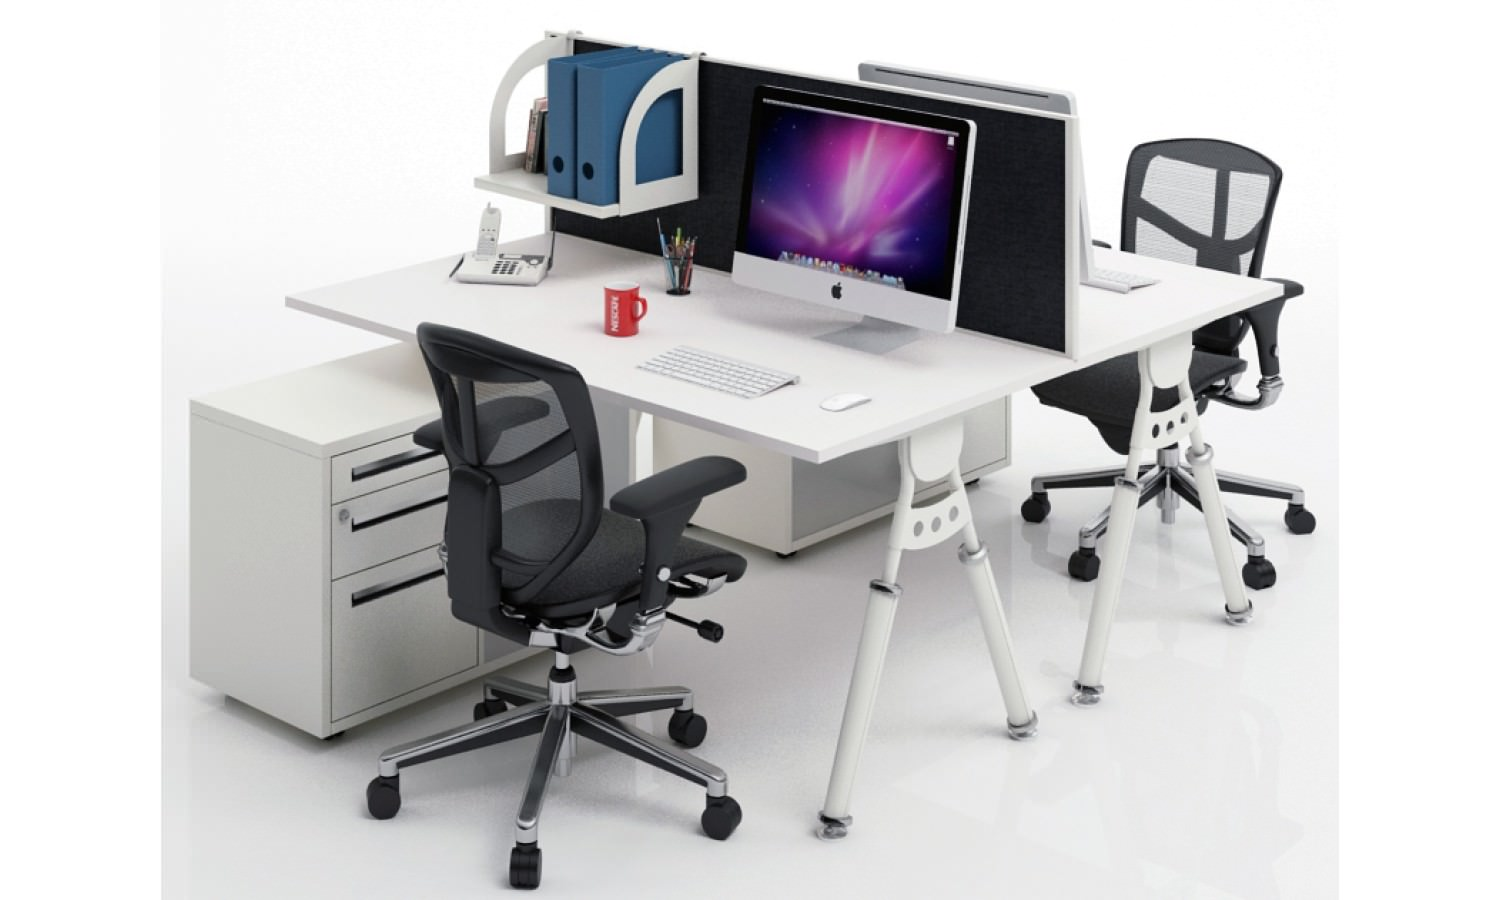 Two Sided Office Desk For Computers Units Of Movable Chairs Mounted Shelf Organizing